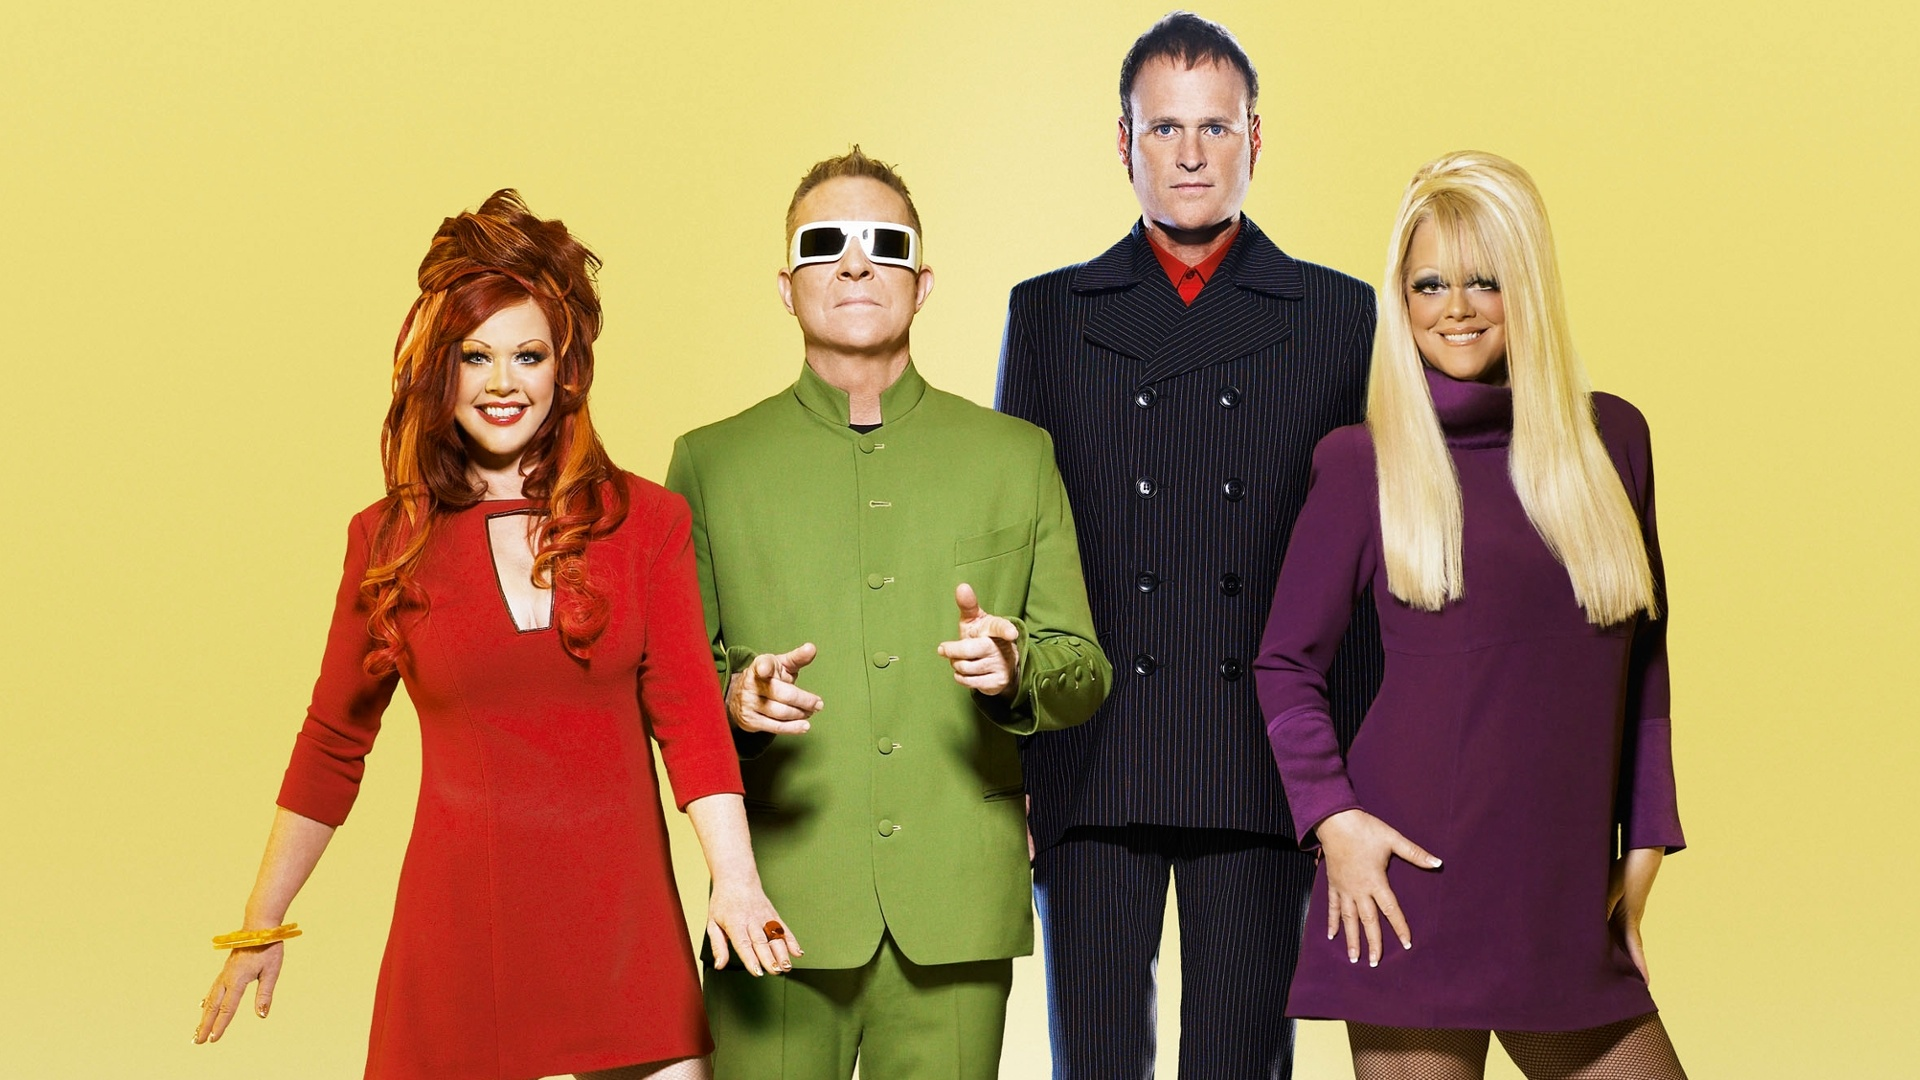 HQ The B 52s Wallpapers | File 500.3Kb